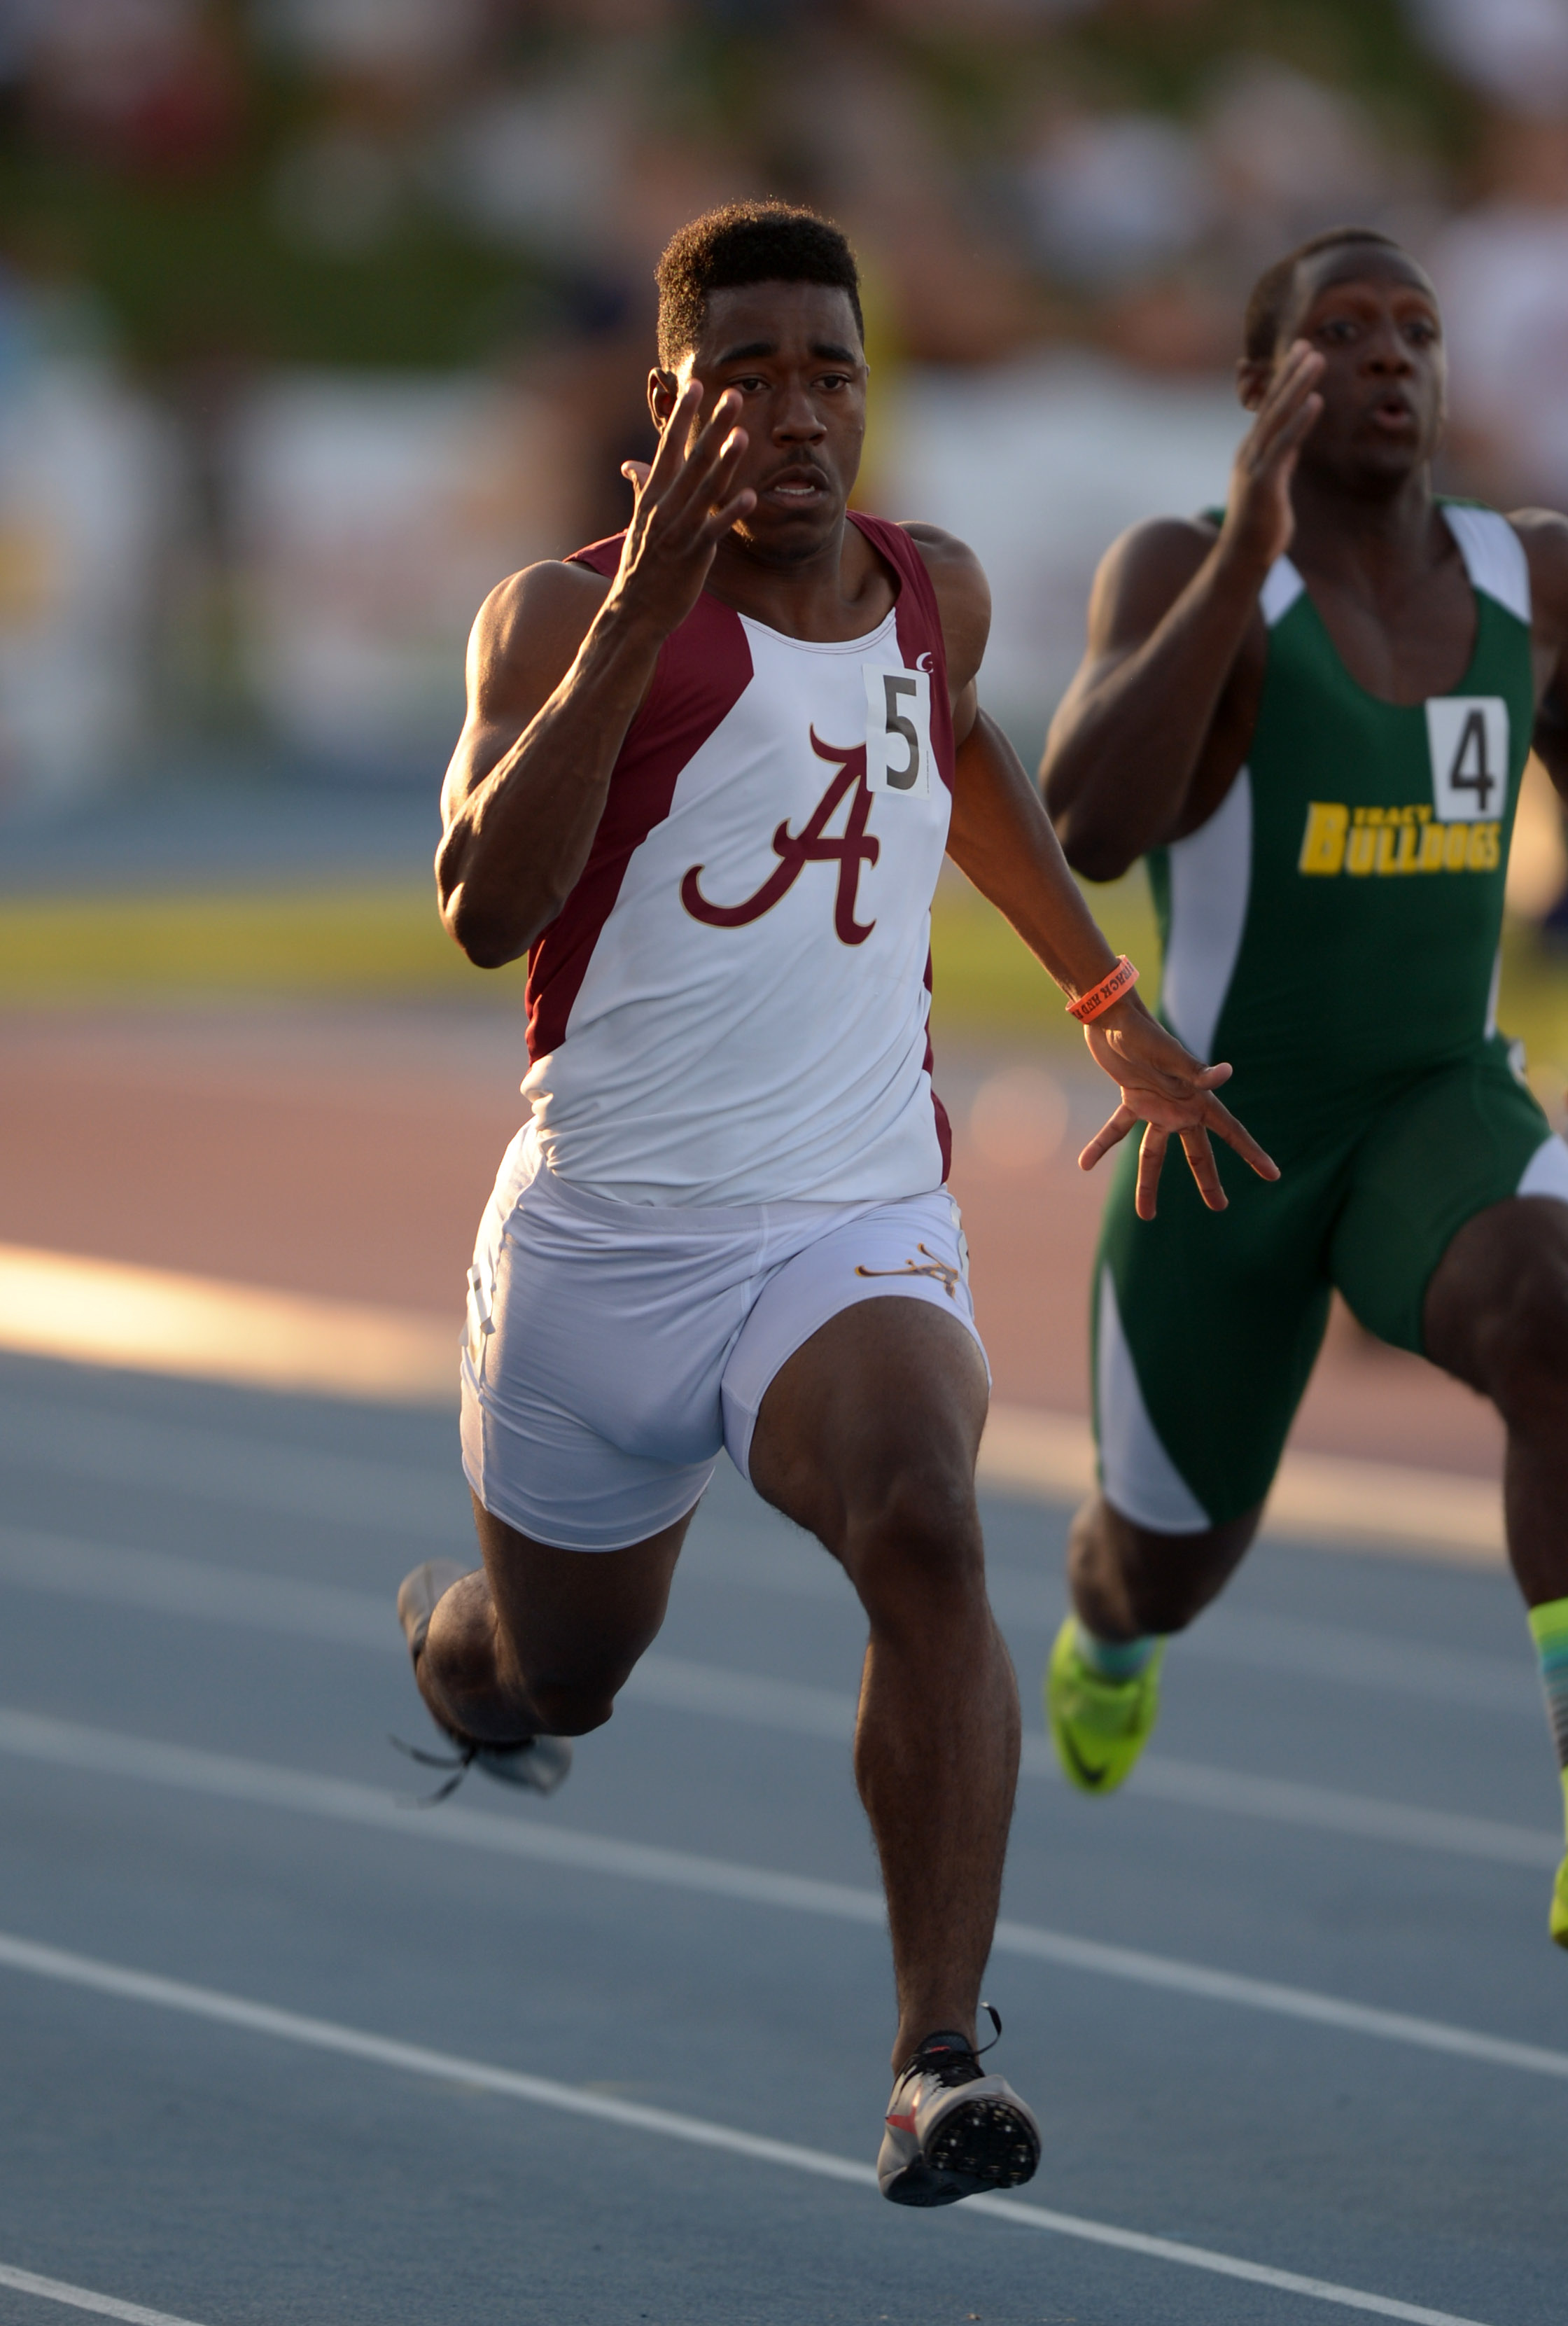 Dominic Davis has elite speed that he shows on the track and the football field.